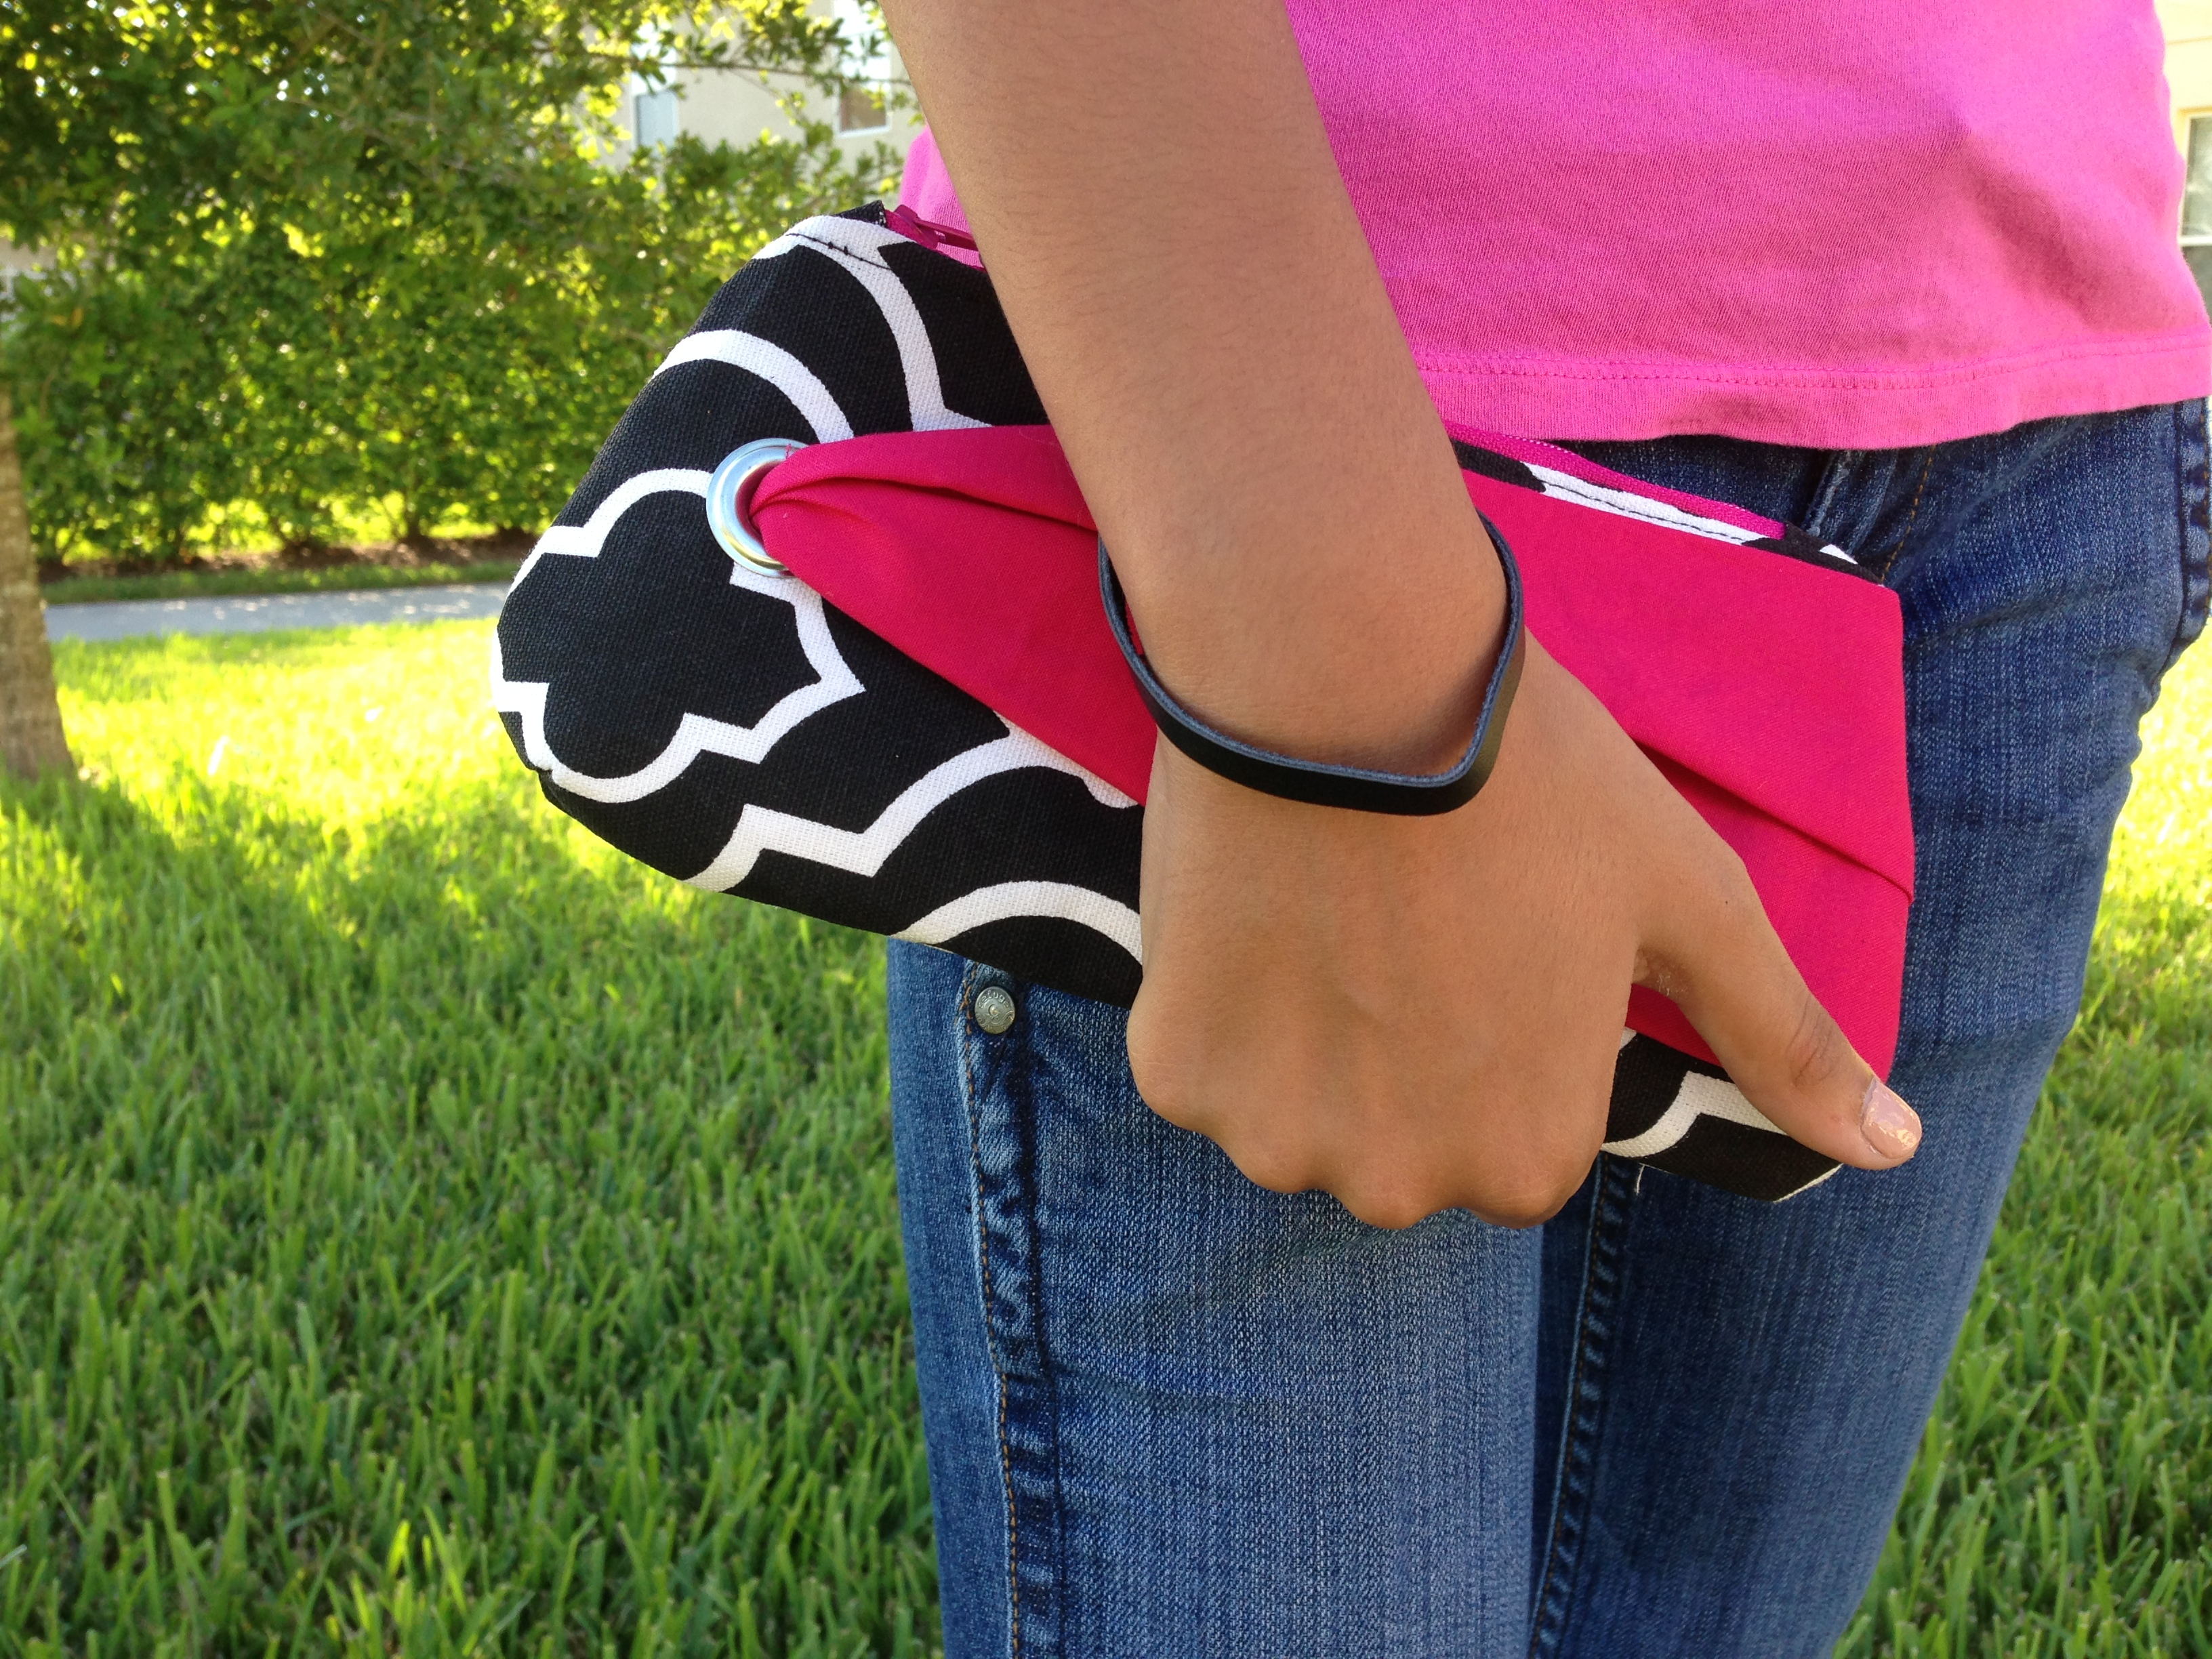 Tuxedo Wristlet in Pomegrante for on the go / by wanda lopez designs